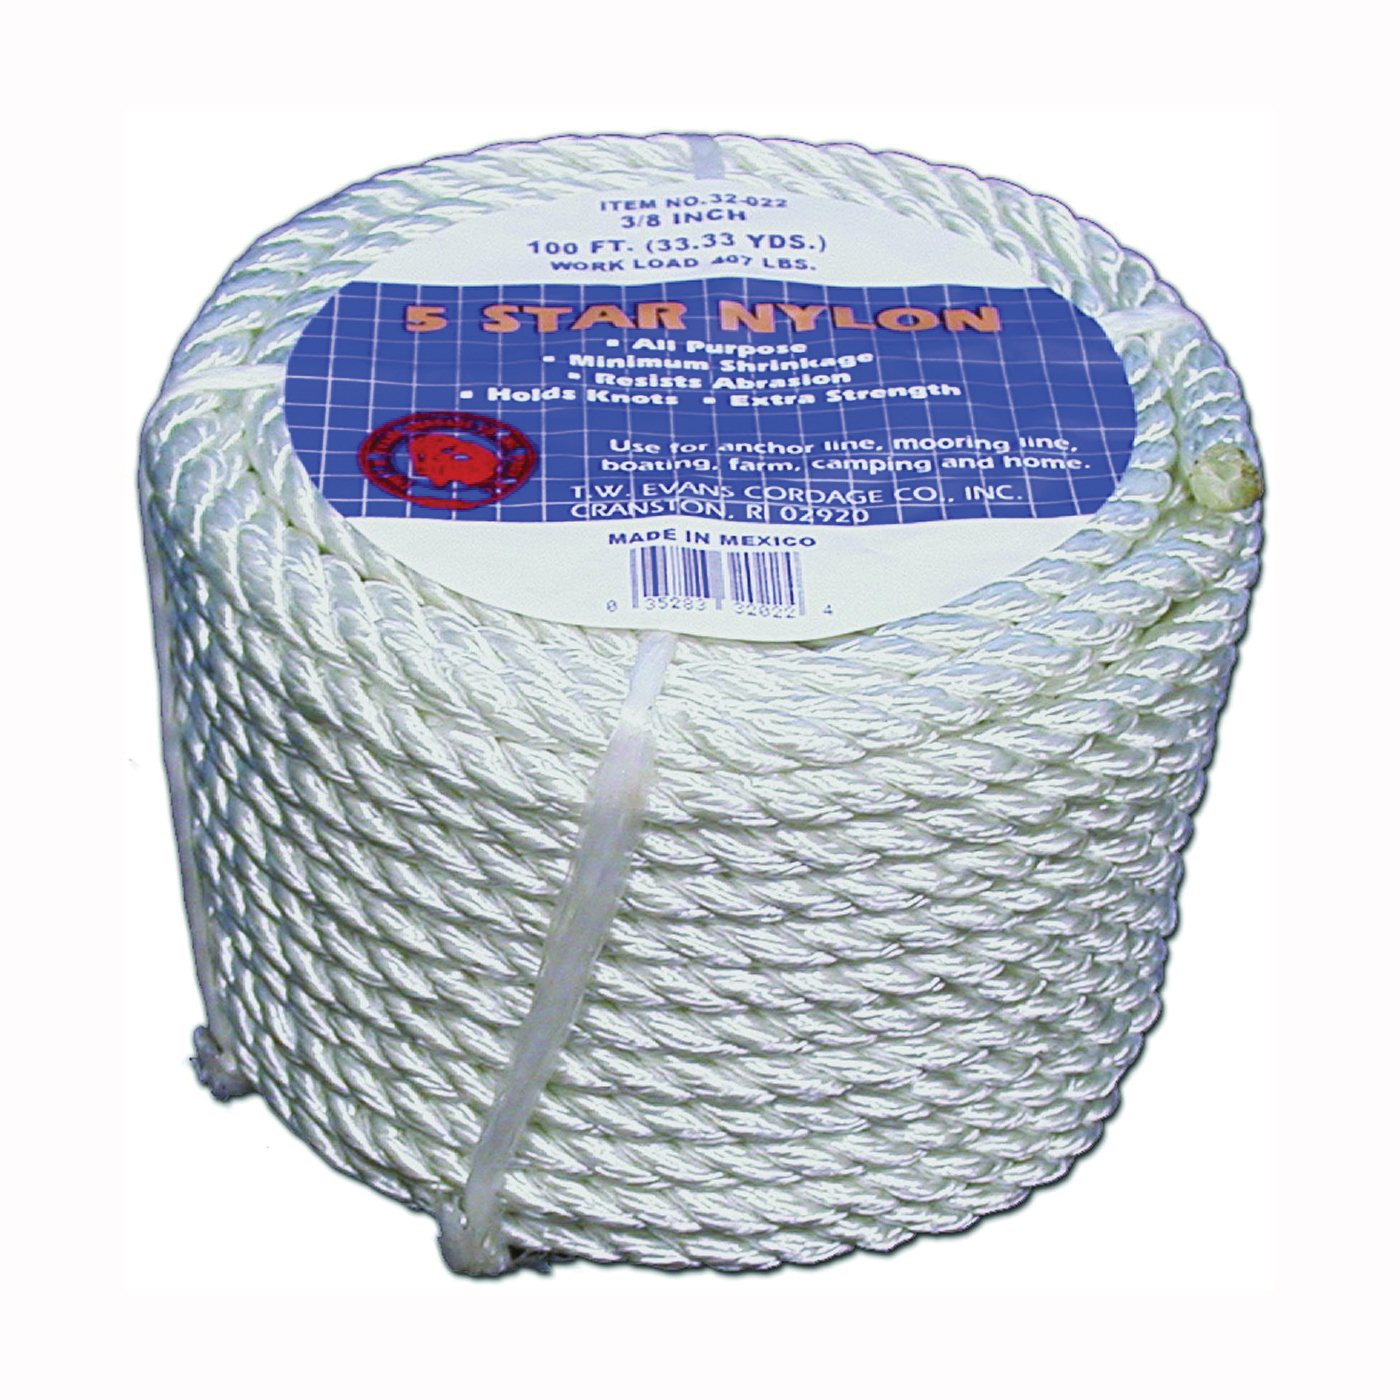 Picture of T.W. Evans Cordage 32-003 Rope, 1/2 in Dia, 50 ft L, Nylon, Natural White